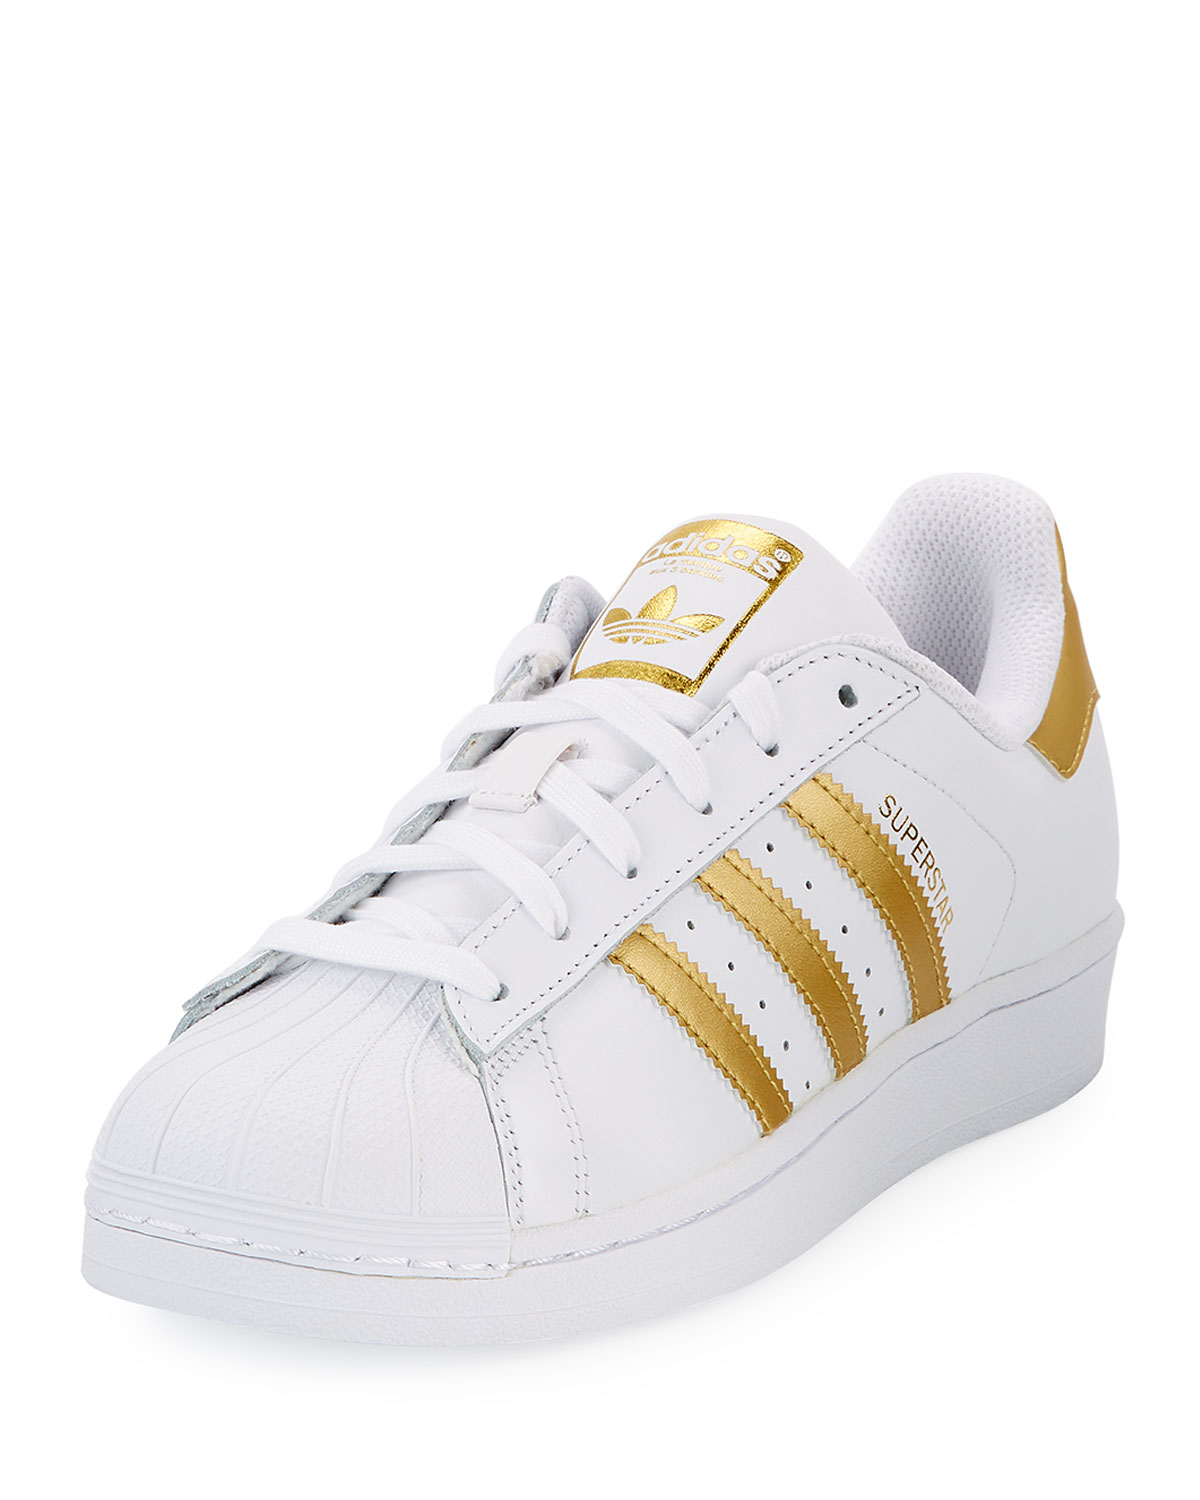 Superstar Original Fashion Sneaker, White/Gold